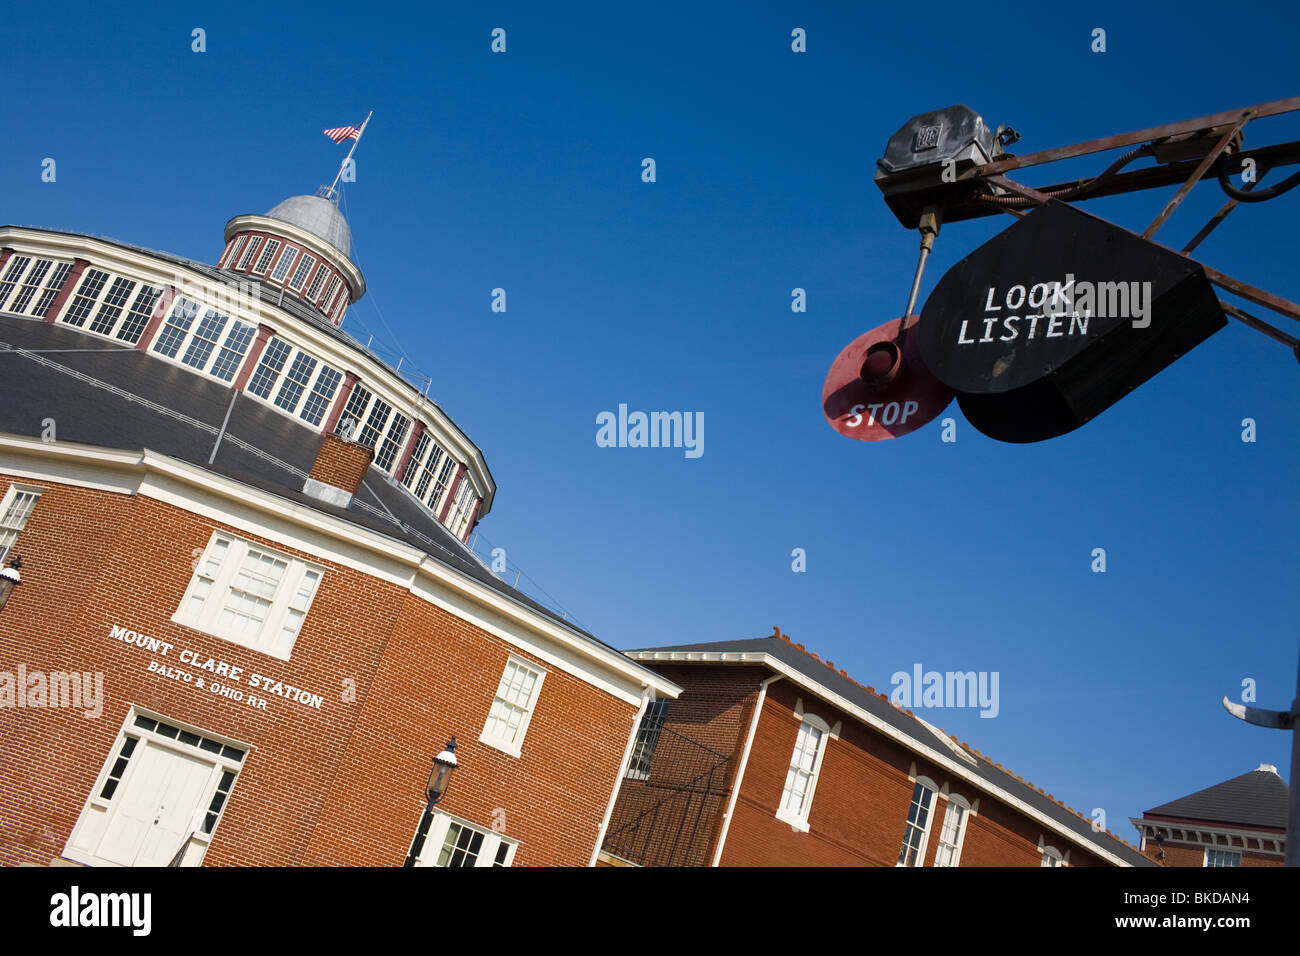 Baltimore and Ohio Railroad Museum in Mt. Clare Shops, oldest collection in world, Baltimore Maryland - Stock Image